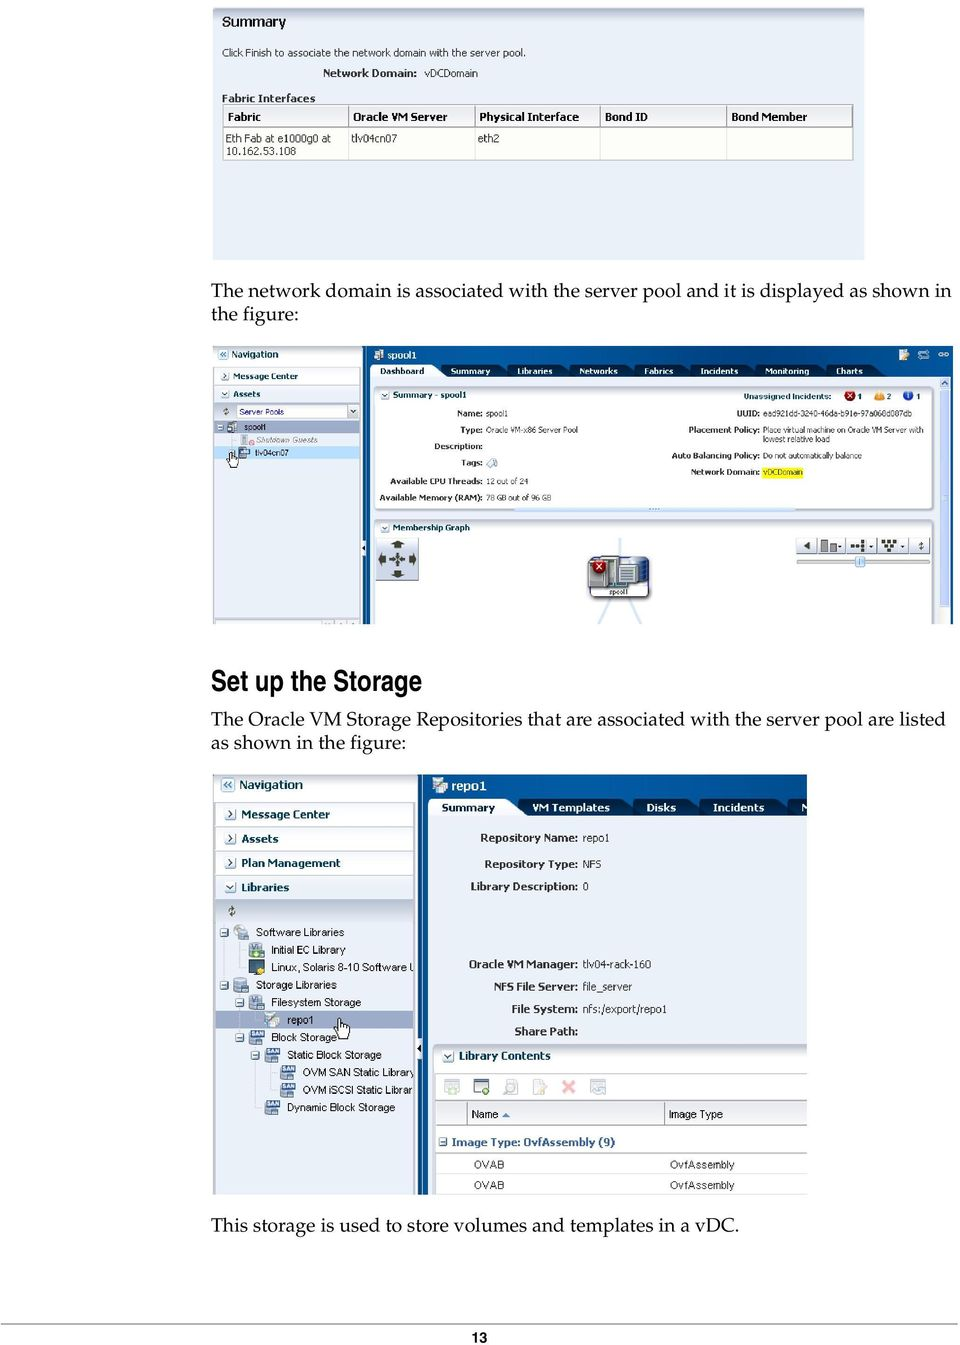 Storage Repositories that are associated with the server pool are listed